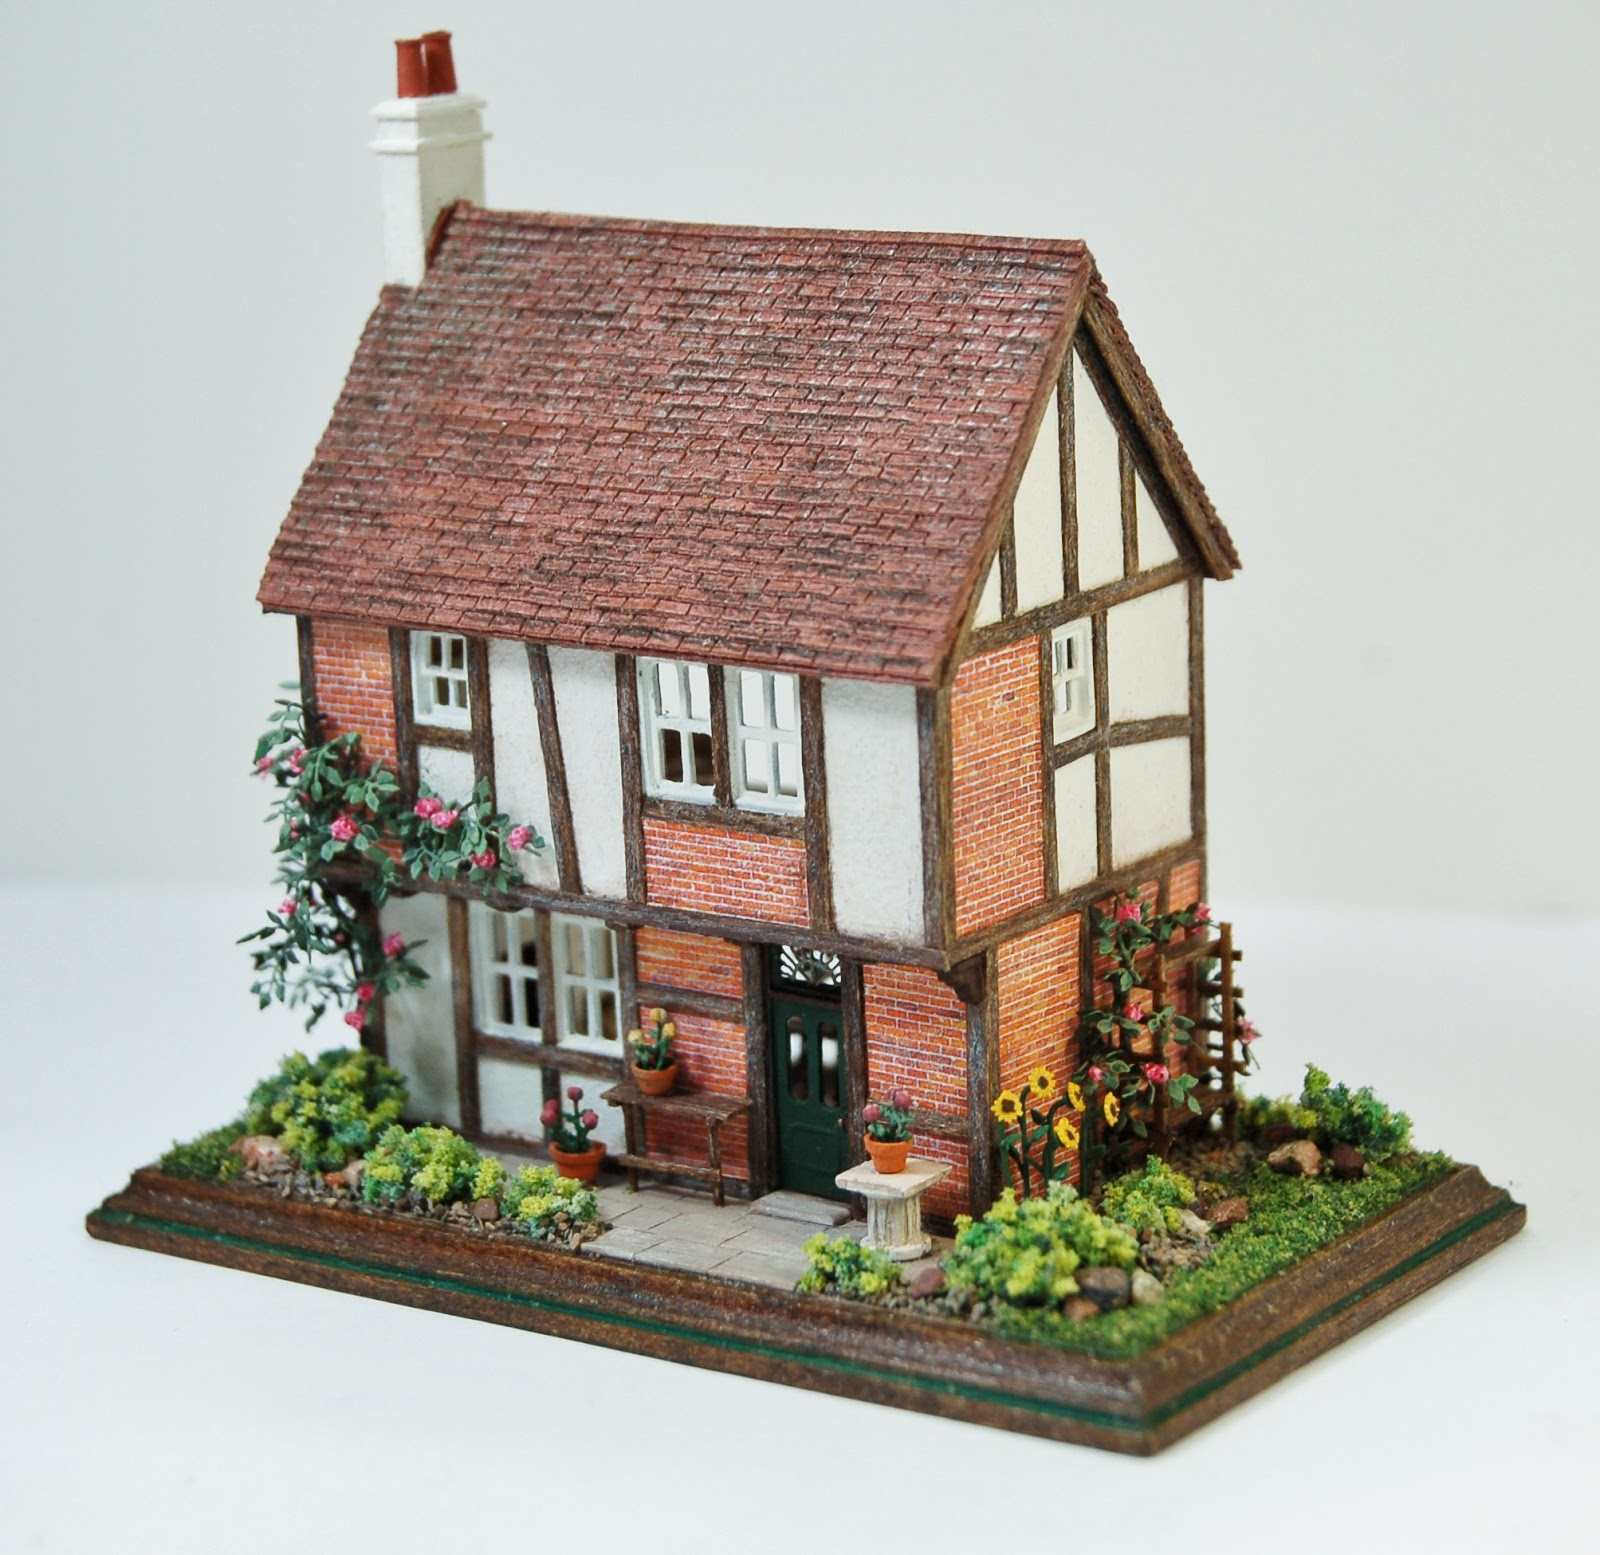 miniatures and shown pin garden cottages in then cottage miniature a you we the like make fairy houses ve did house stone collection past